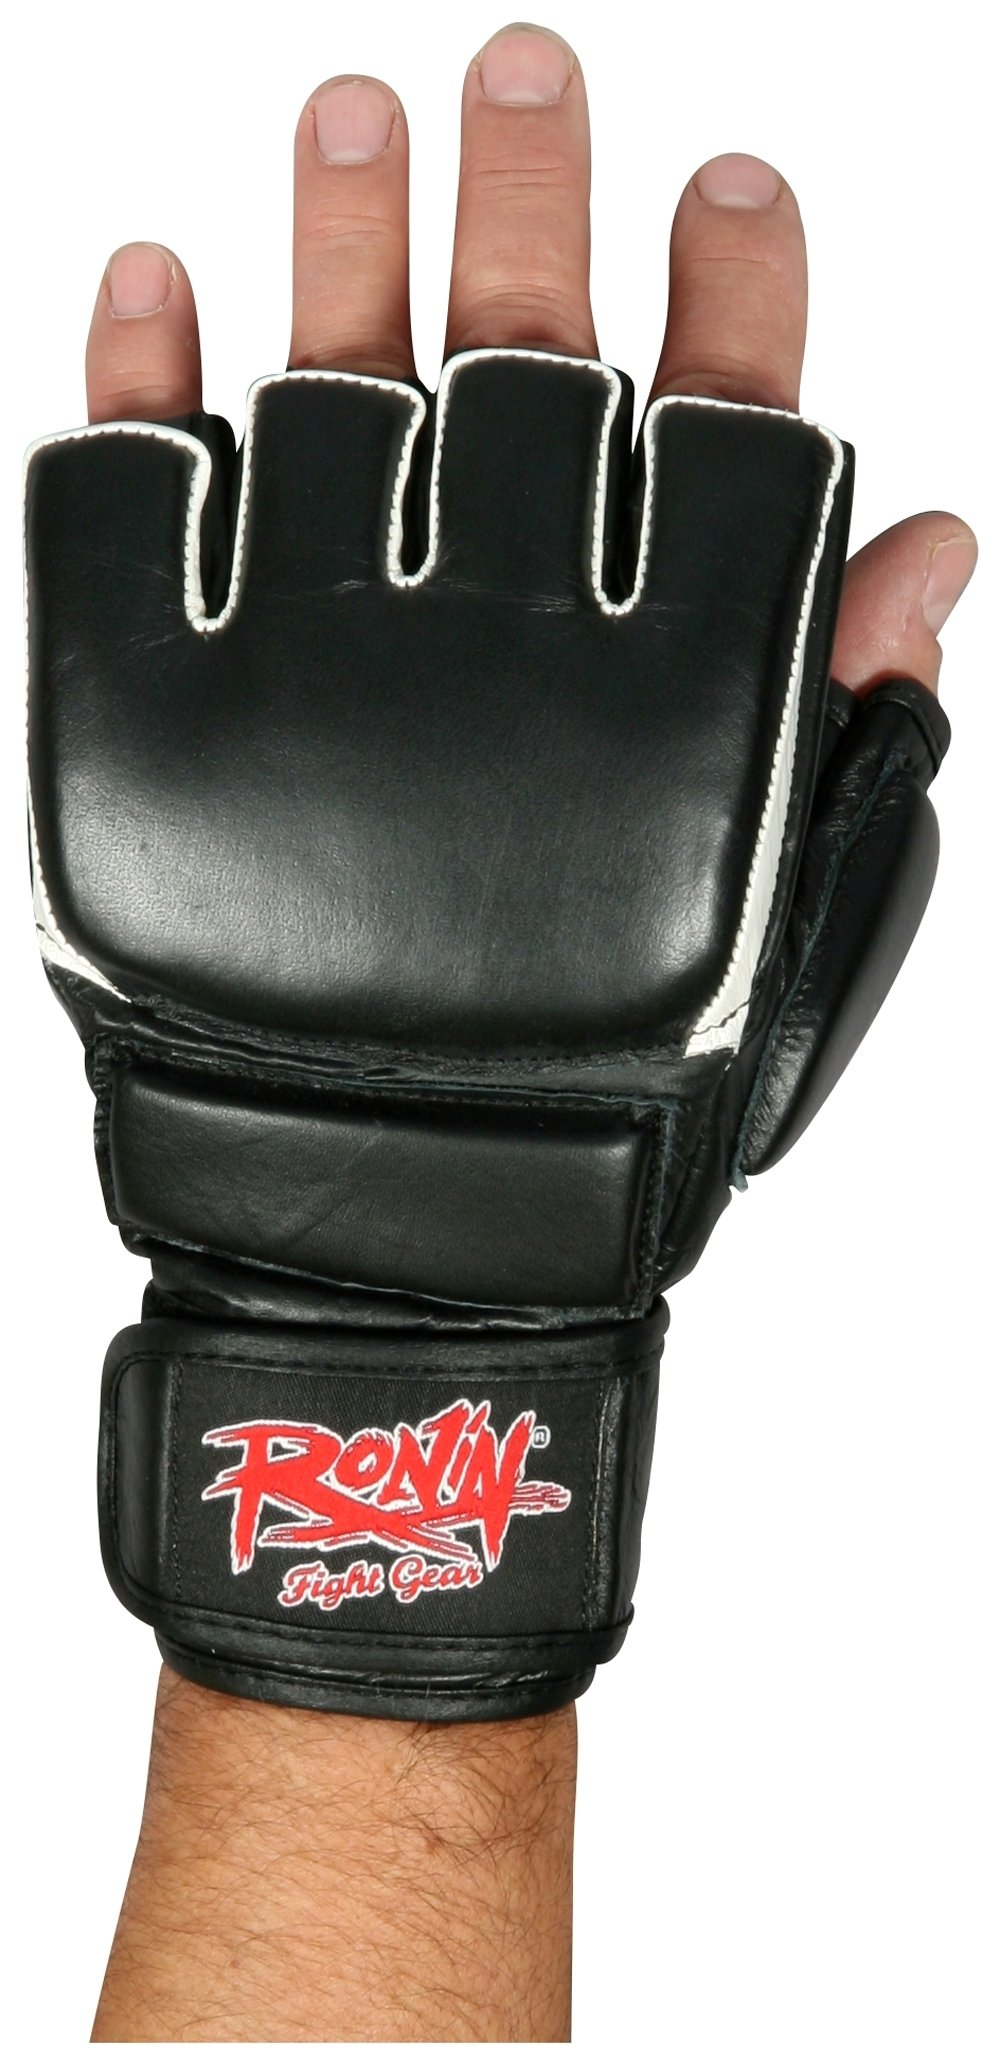 Ronin® MMA Extreme Fighting Handschoen Zwart-wit